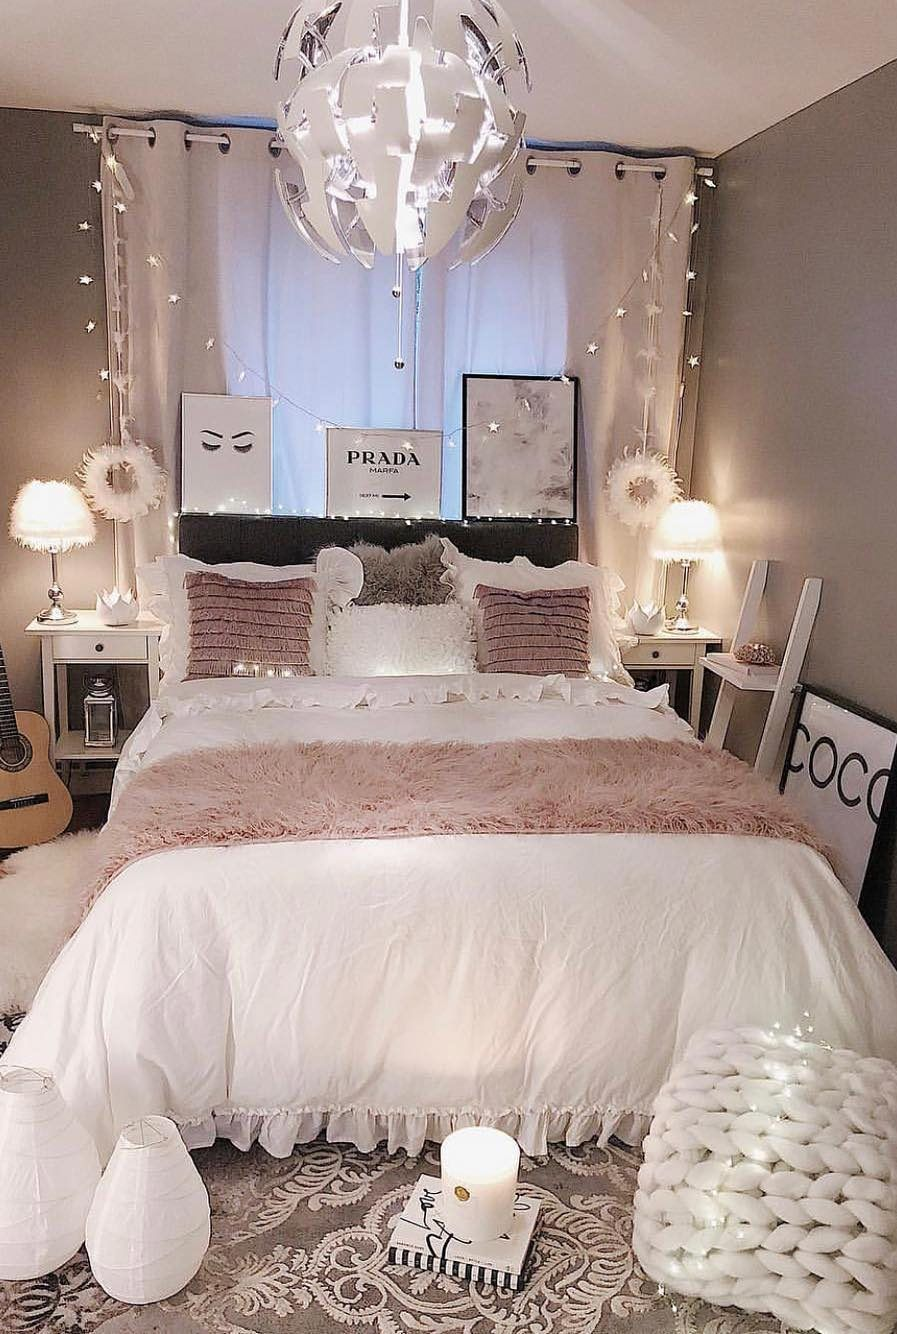 43 Small And Cute Bedroom Designs And Ideas For This Year Page 24 Of 43 Womensays Com Women Blog Bedroom Decor Bedroom Design Girl Bedroom Designs